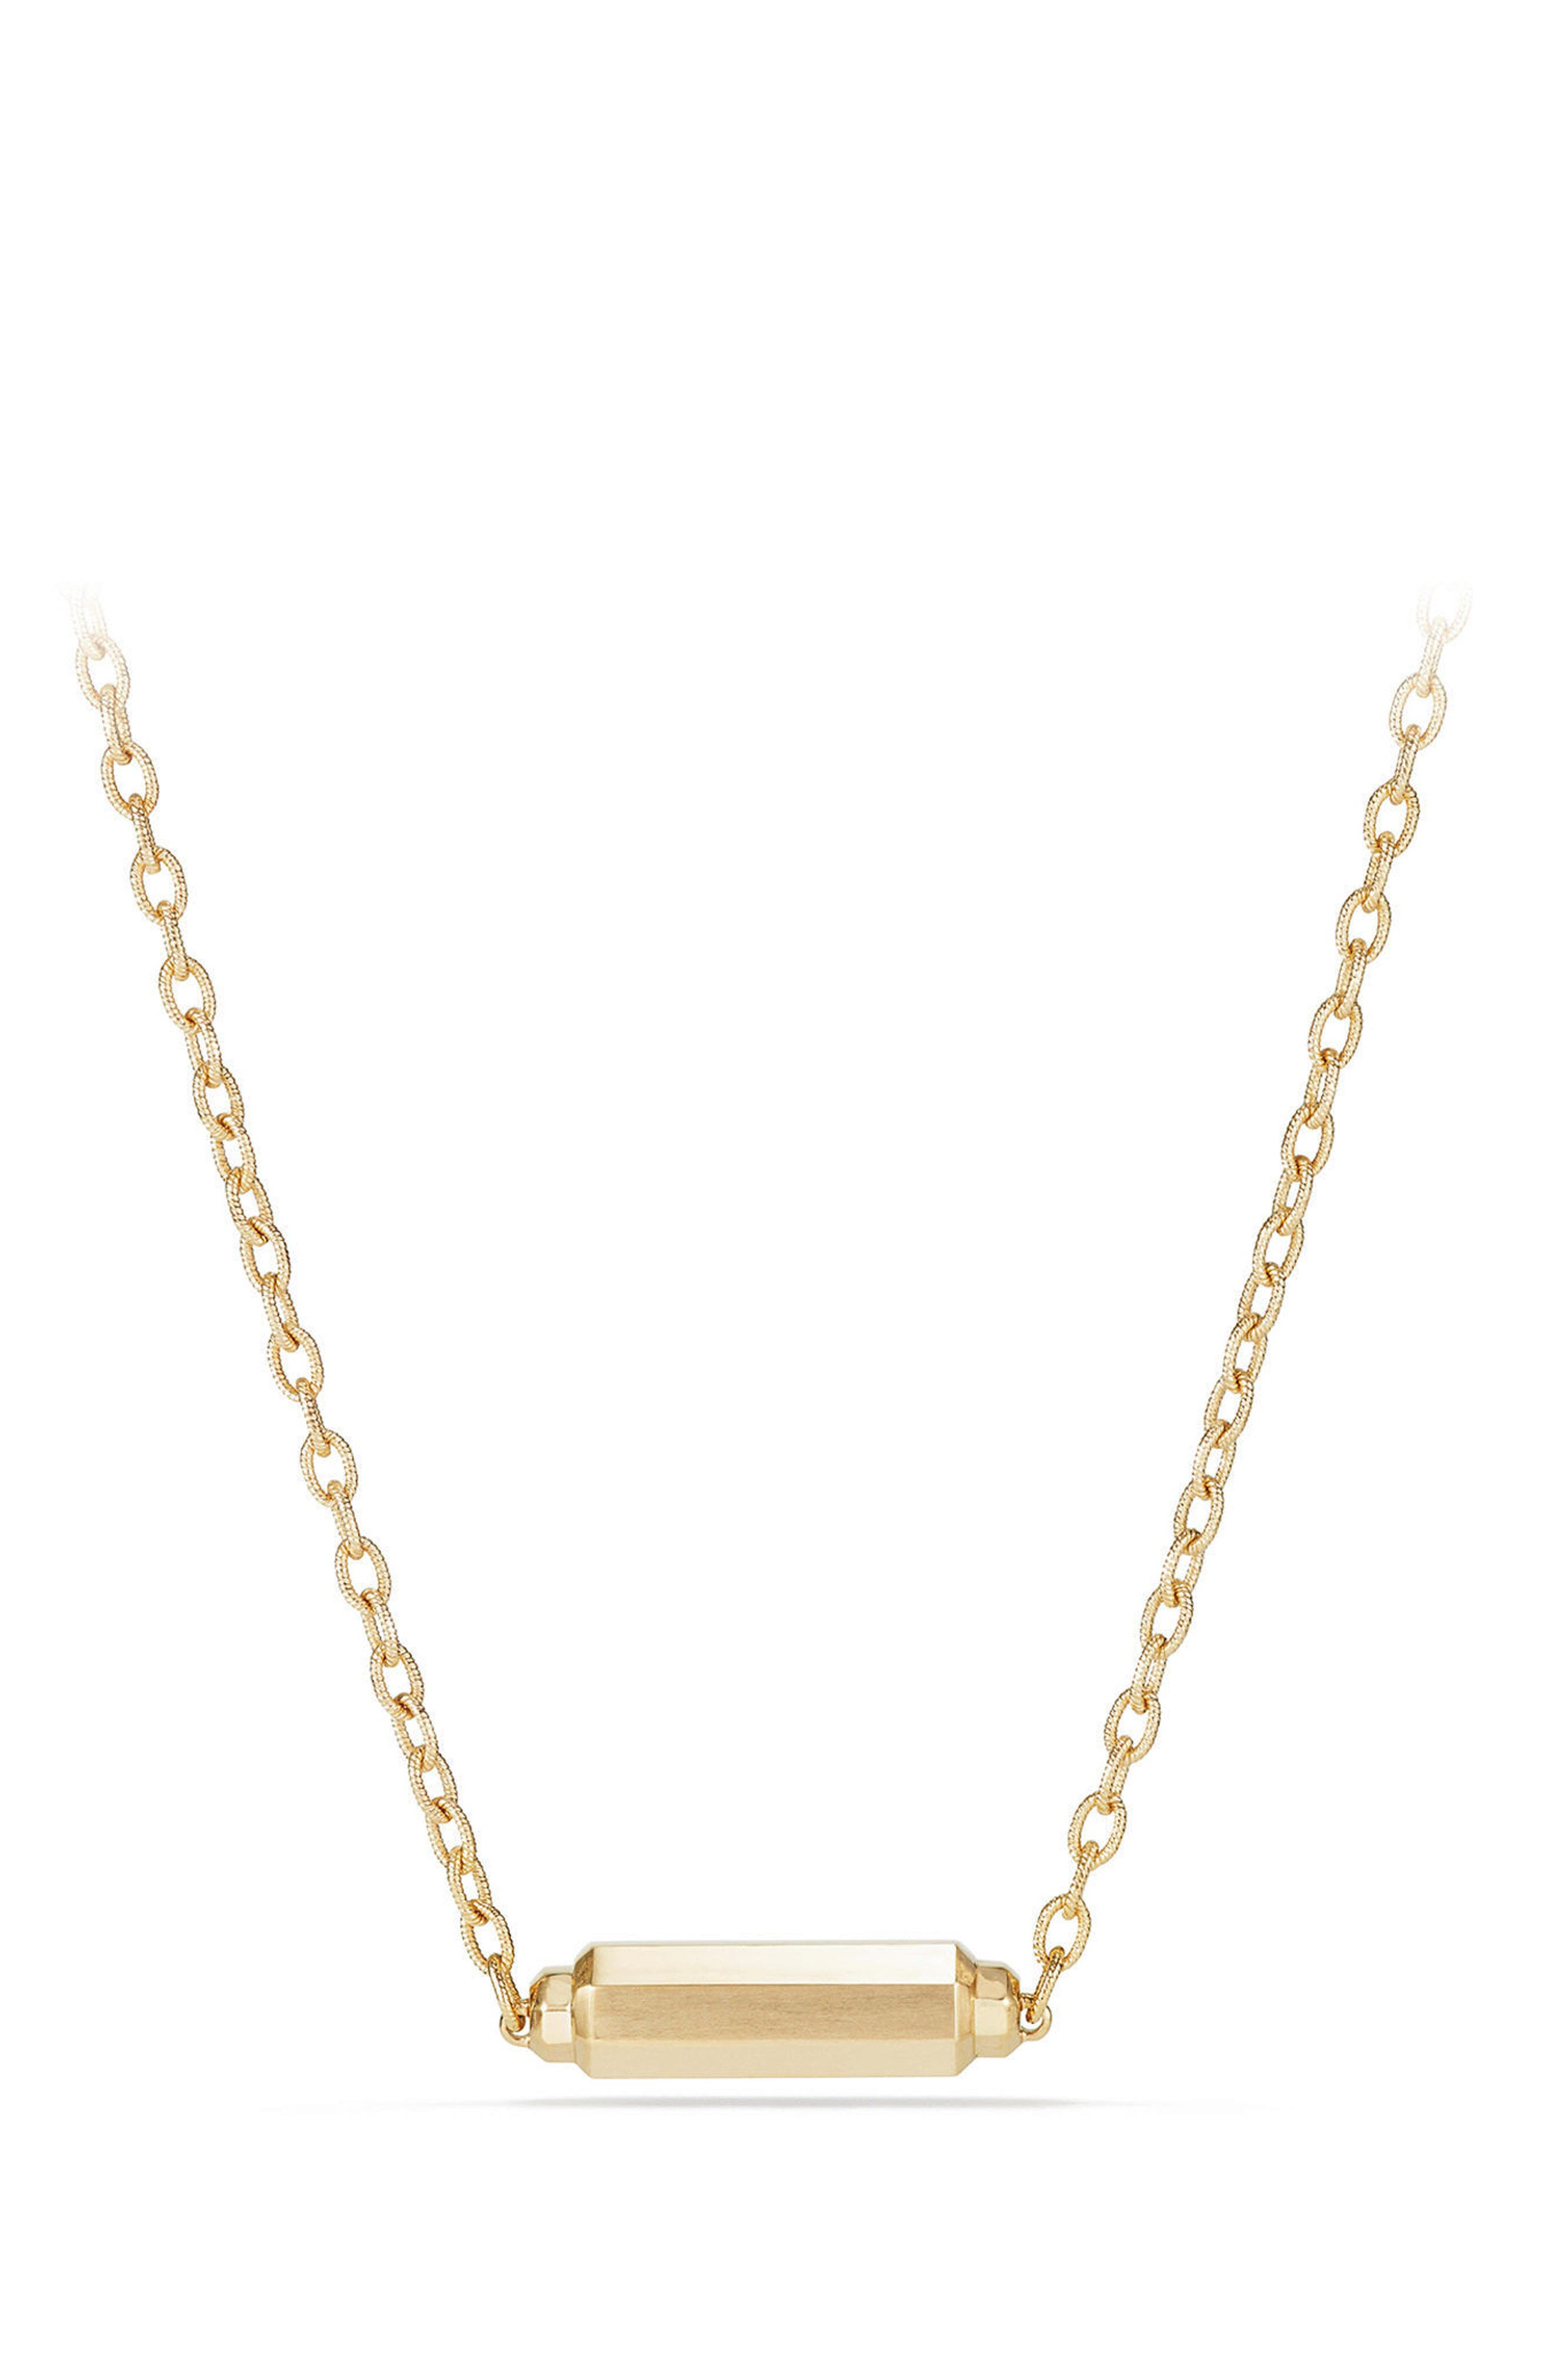 Barrels Single Station Necklace with Diamonds in 18K Gold,                             Alternate thumbnail 3, color,                             YELLOW GOLD